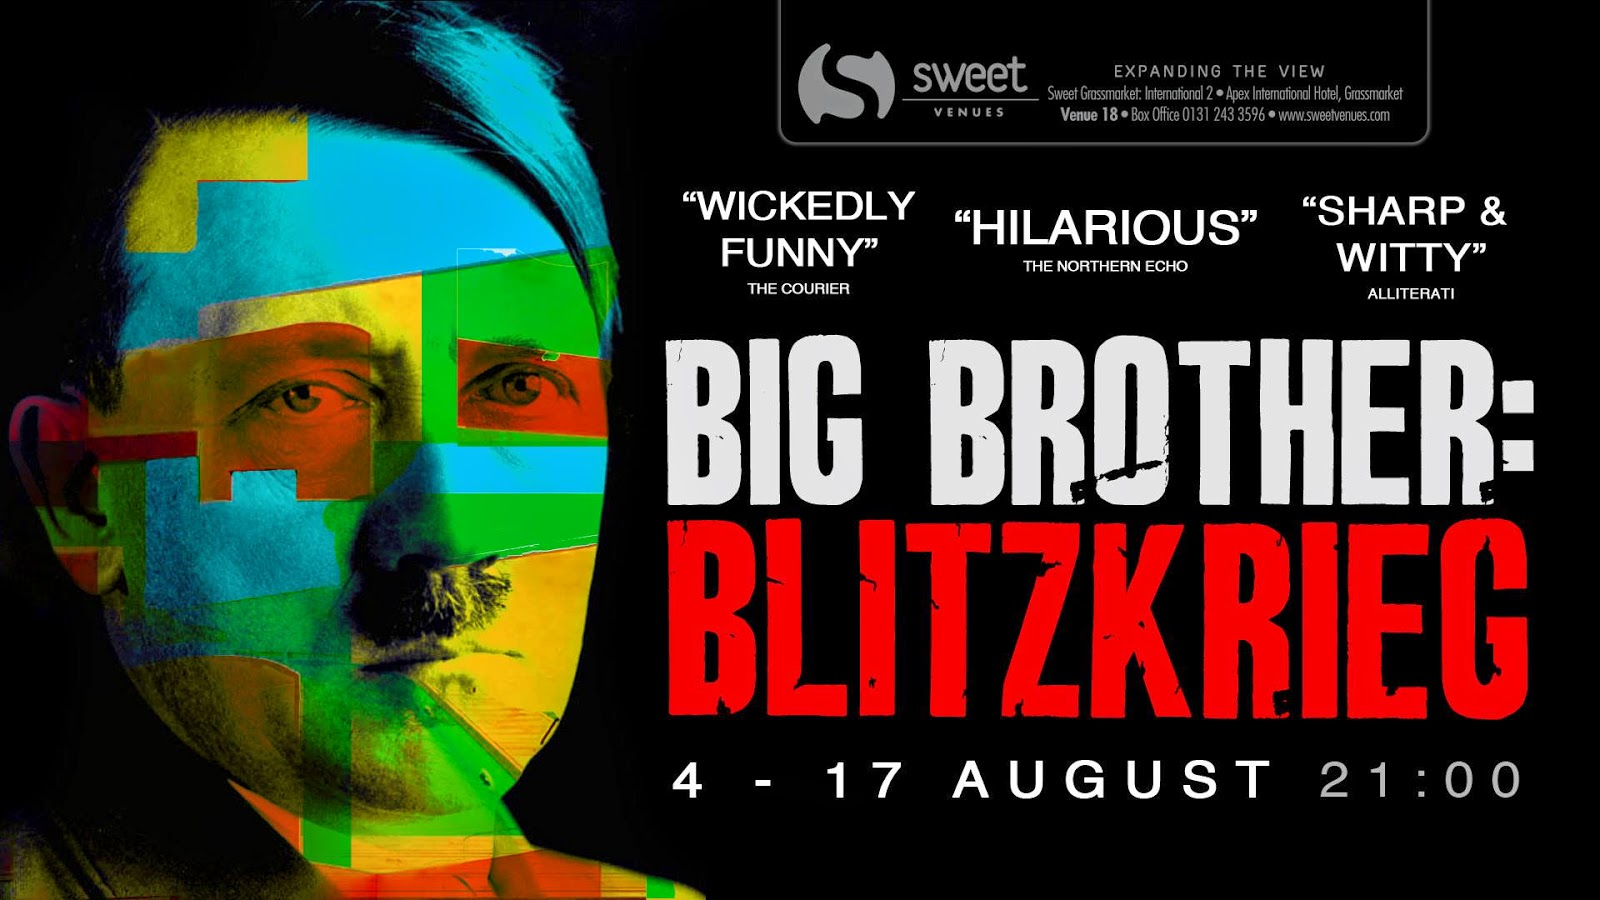 Big Brother Blitzkrieg